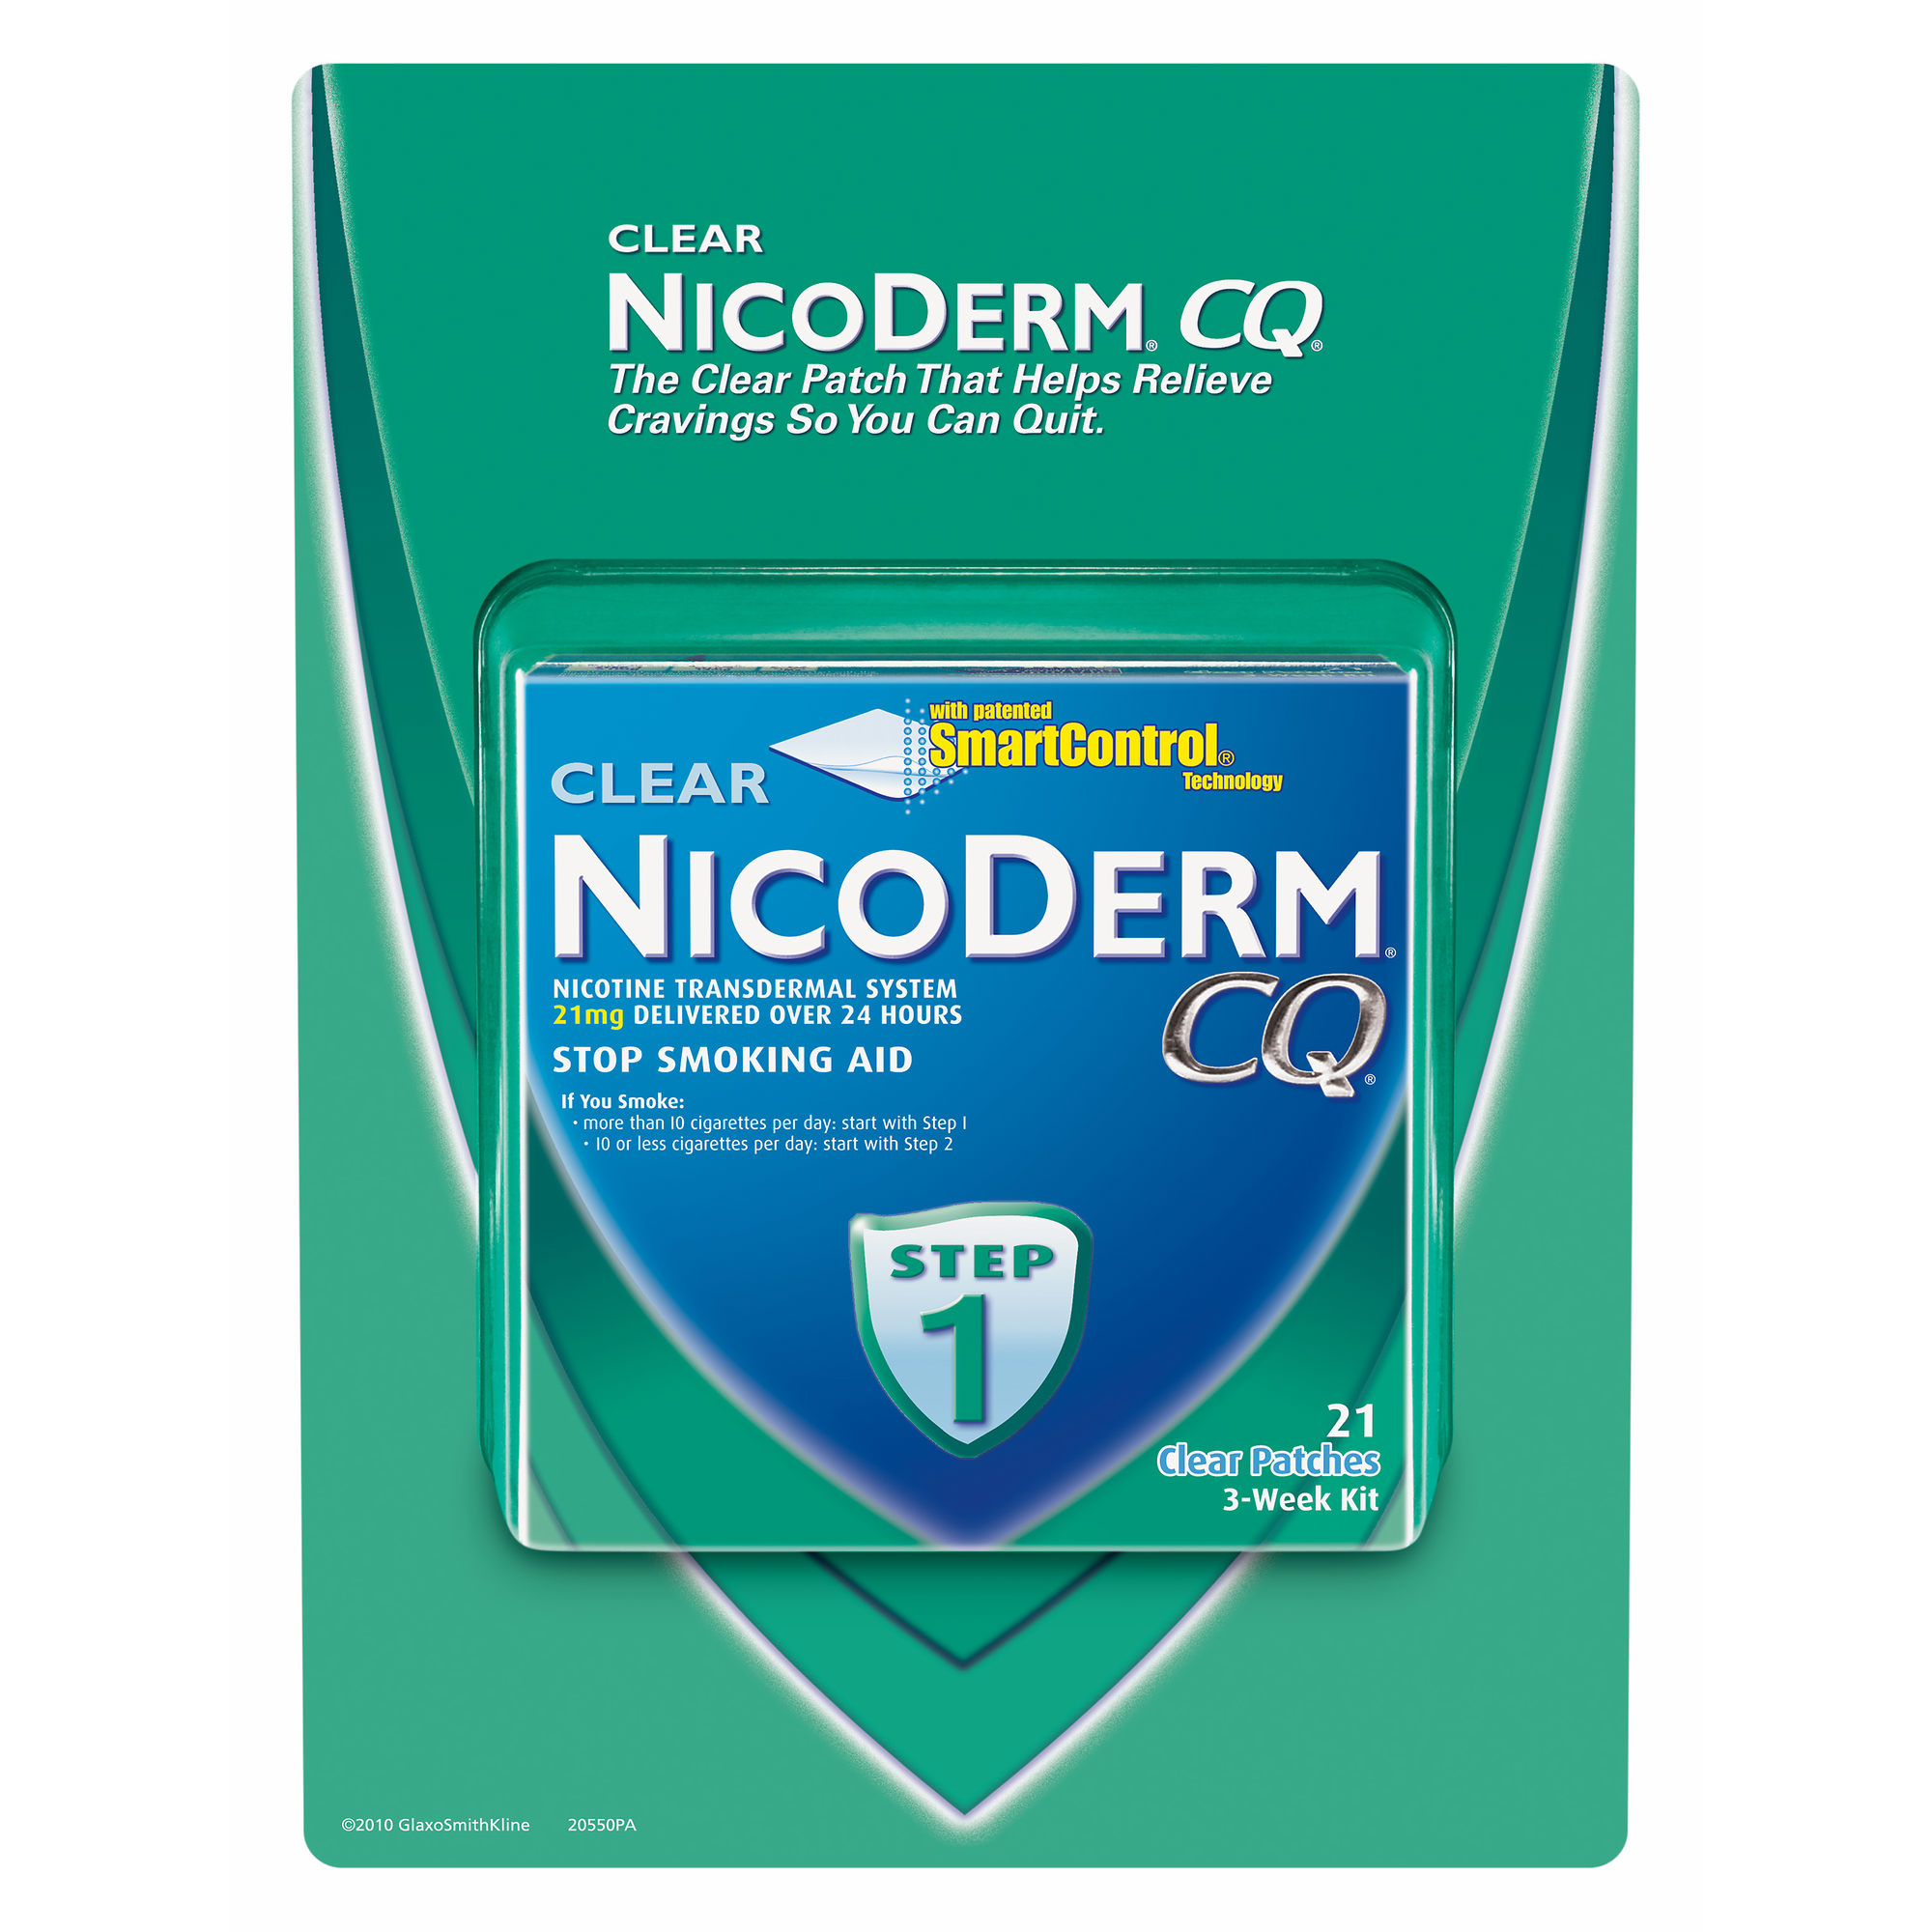 Nicoderm Coupons (Nicorette) - Printable Coupons 2018 - Free Printable Nicotine Patch Coupons